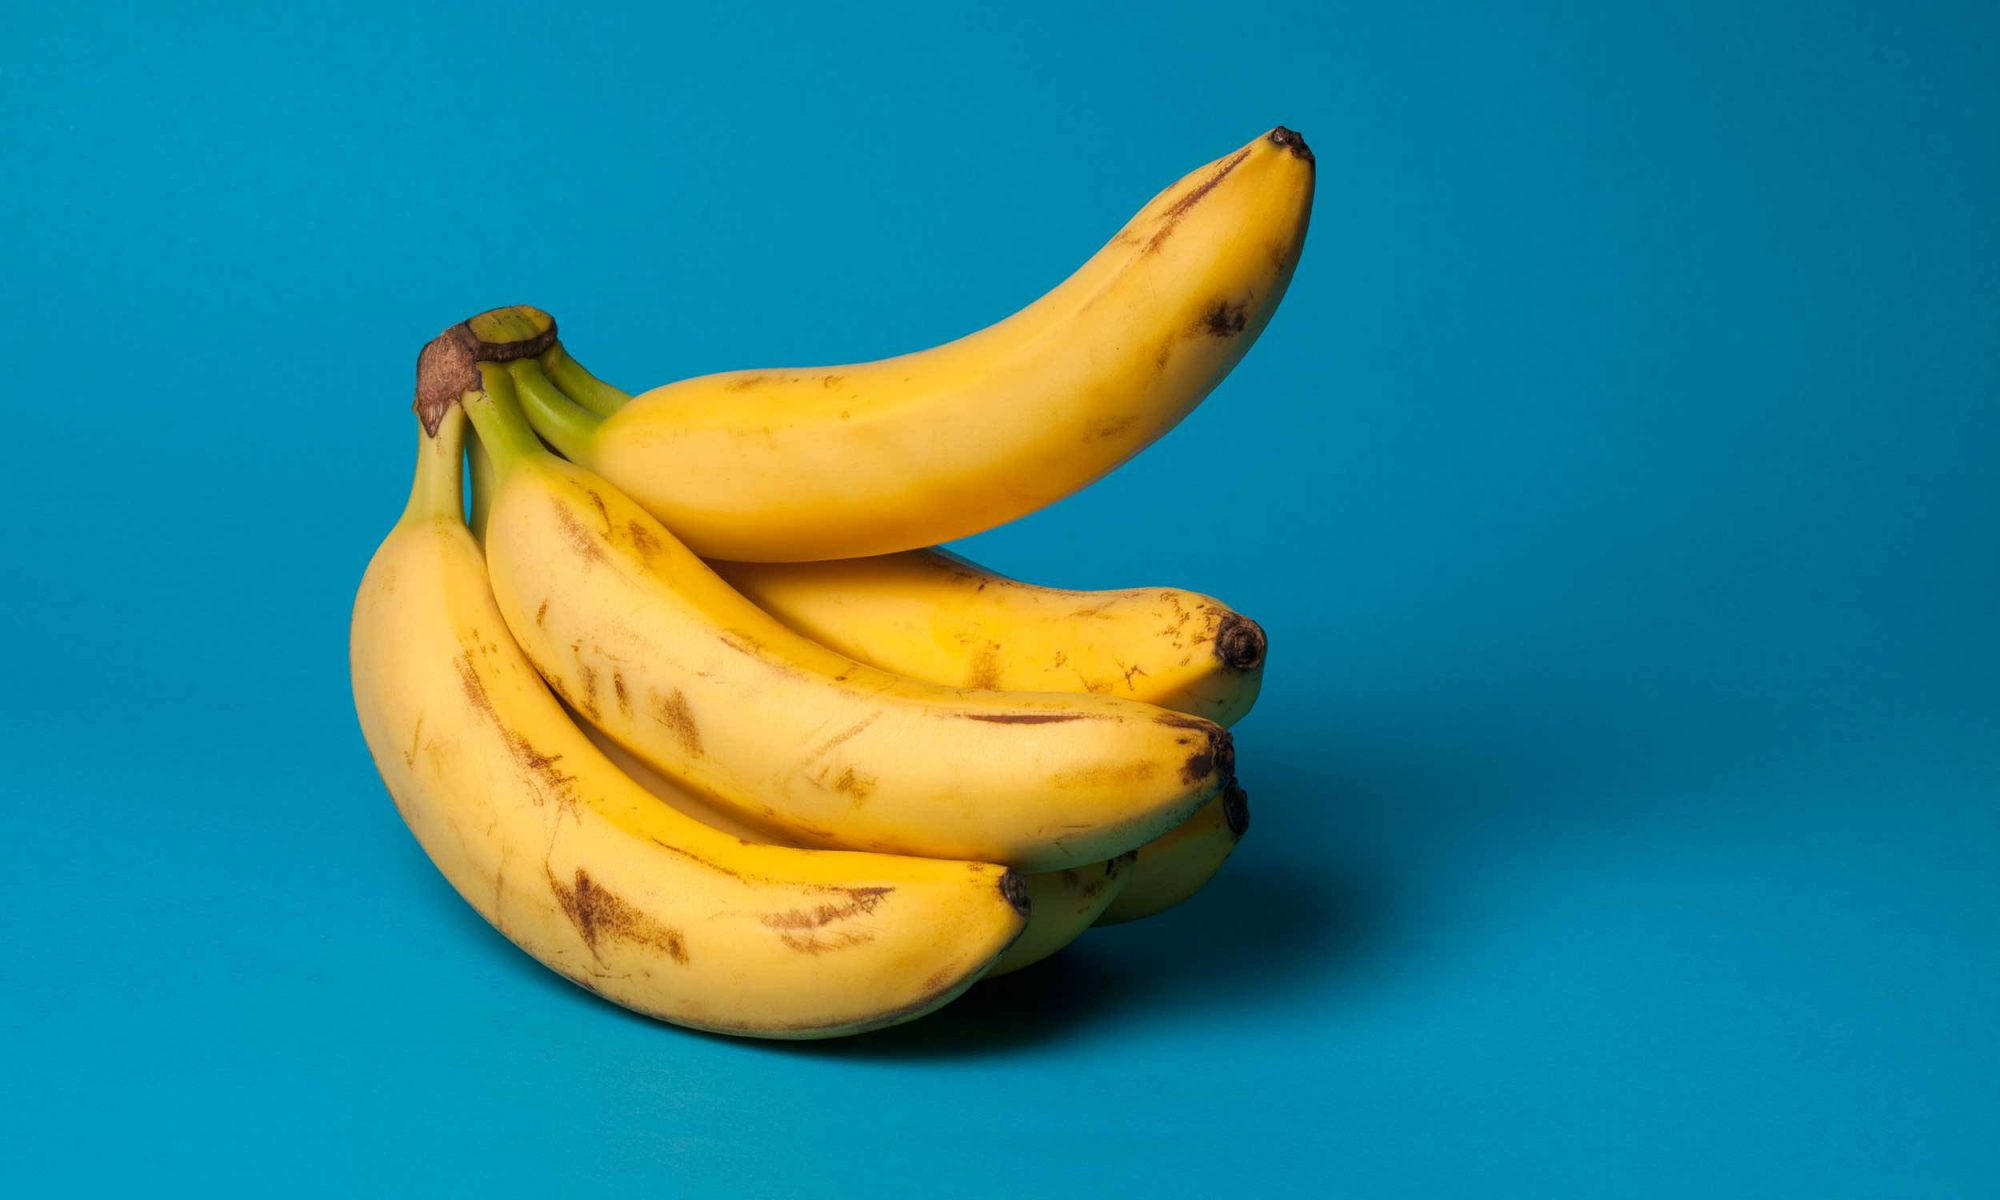 EC: How to Store Bananas So They Don't Turn Black